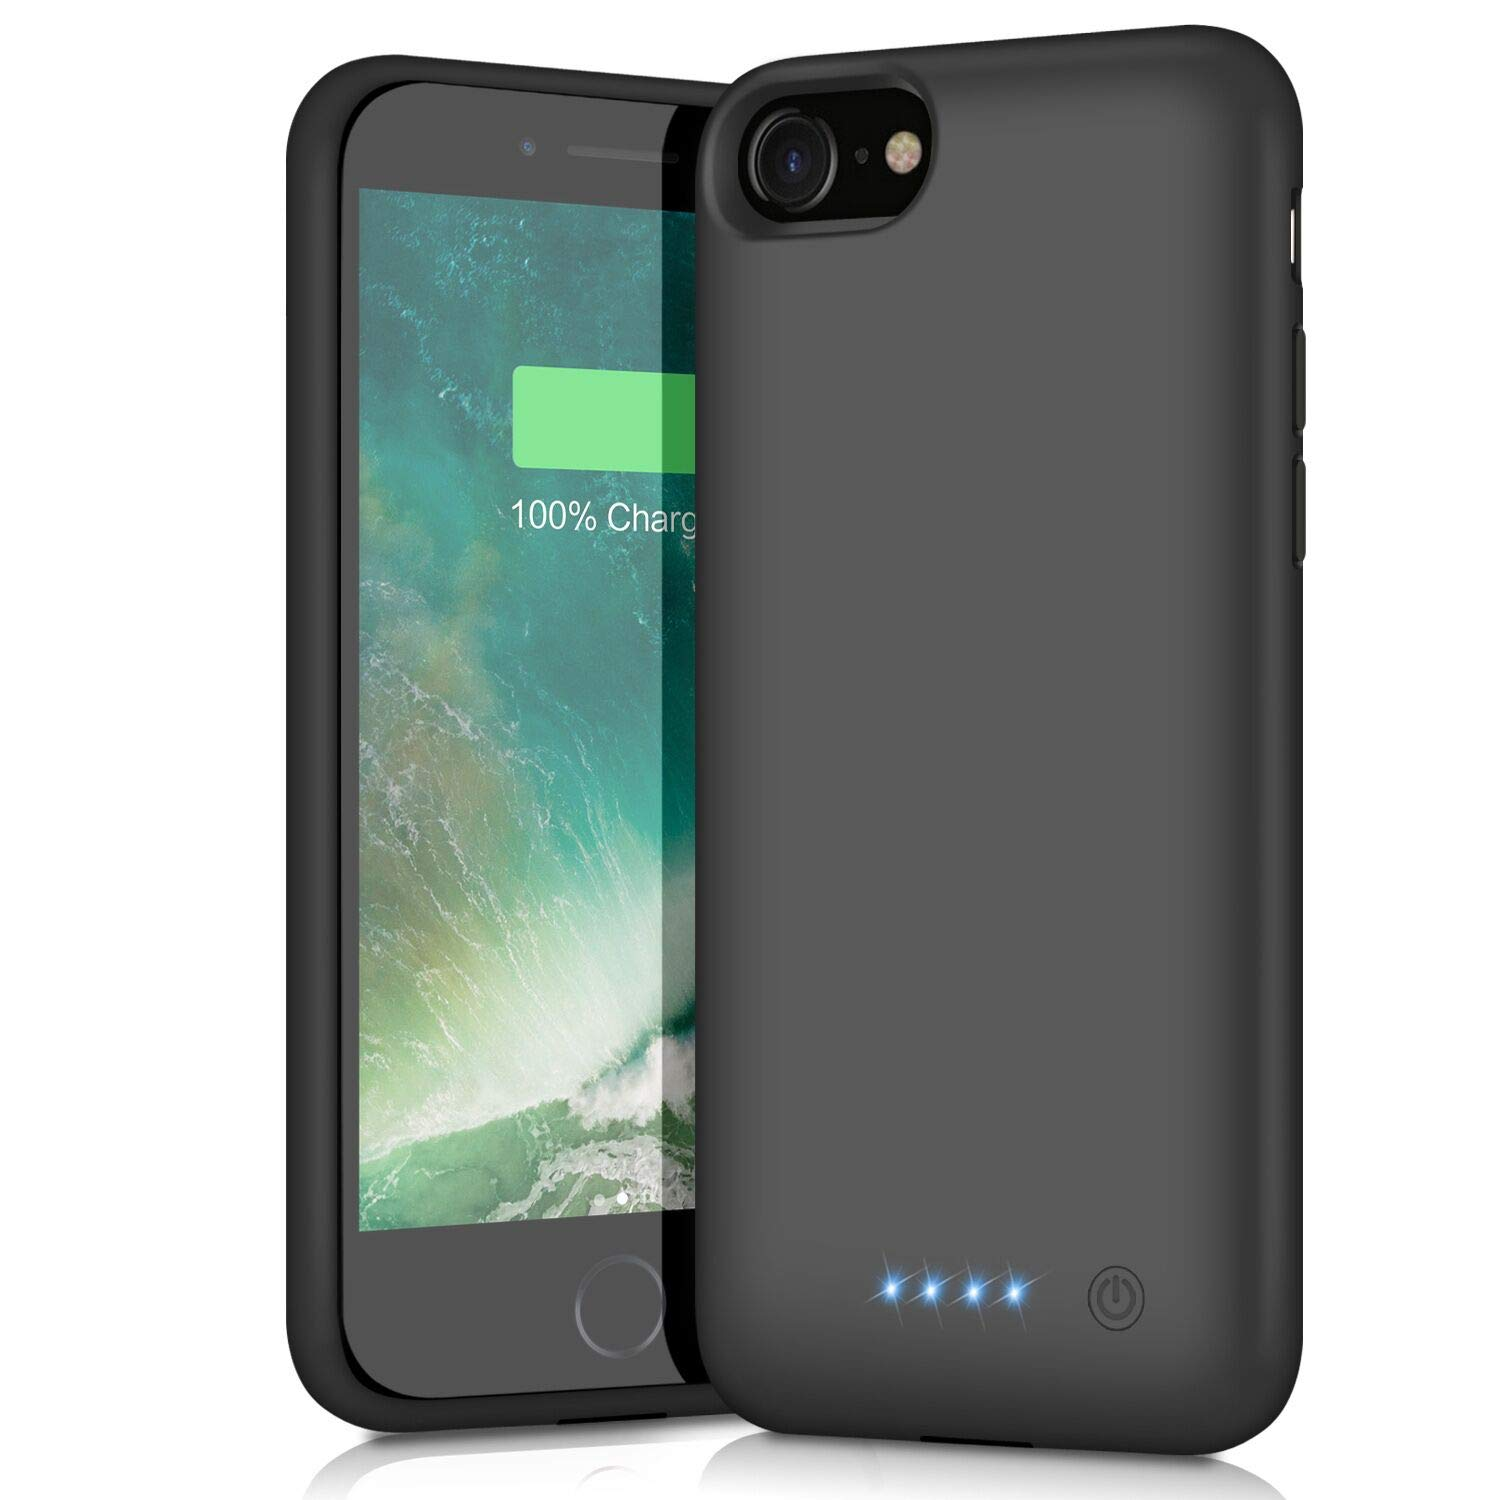 Battery Case for iPhone 8/7, 6000mAh Portable Rechargeable Battery Pack Charger Case for Apple iPhone 8 iPhone 7 [4.7 Inch] Extended Charging Case Protective Power Bank Backup Cover - Black Pxwaxpy